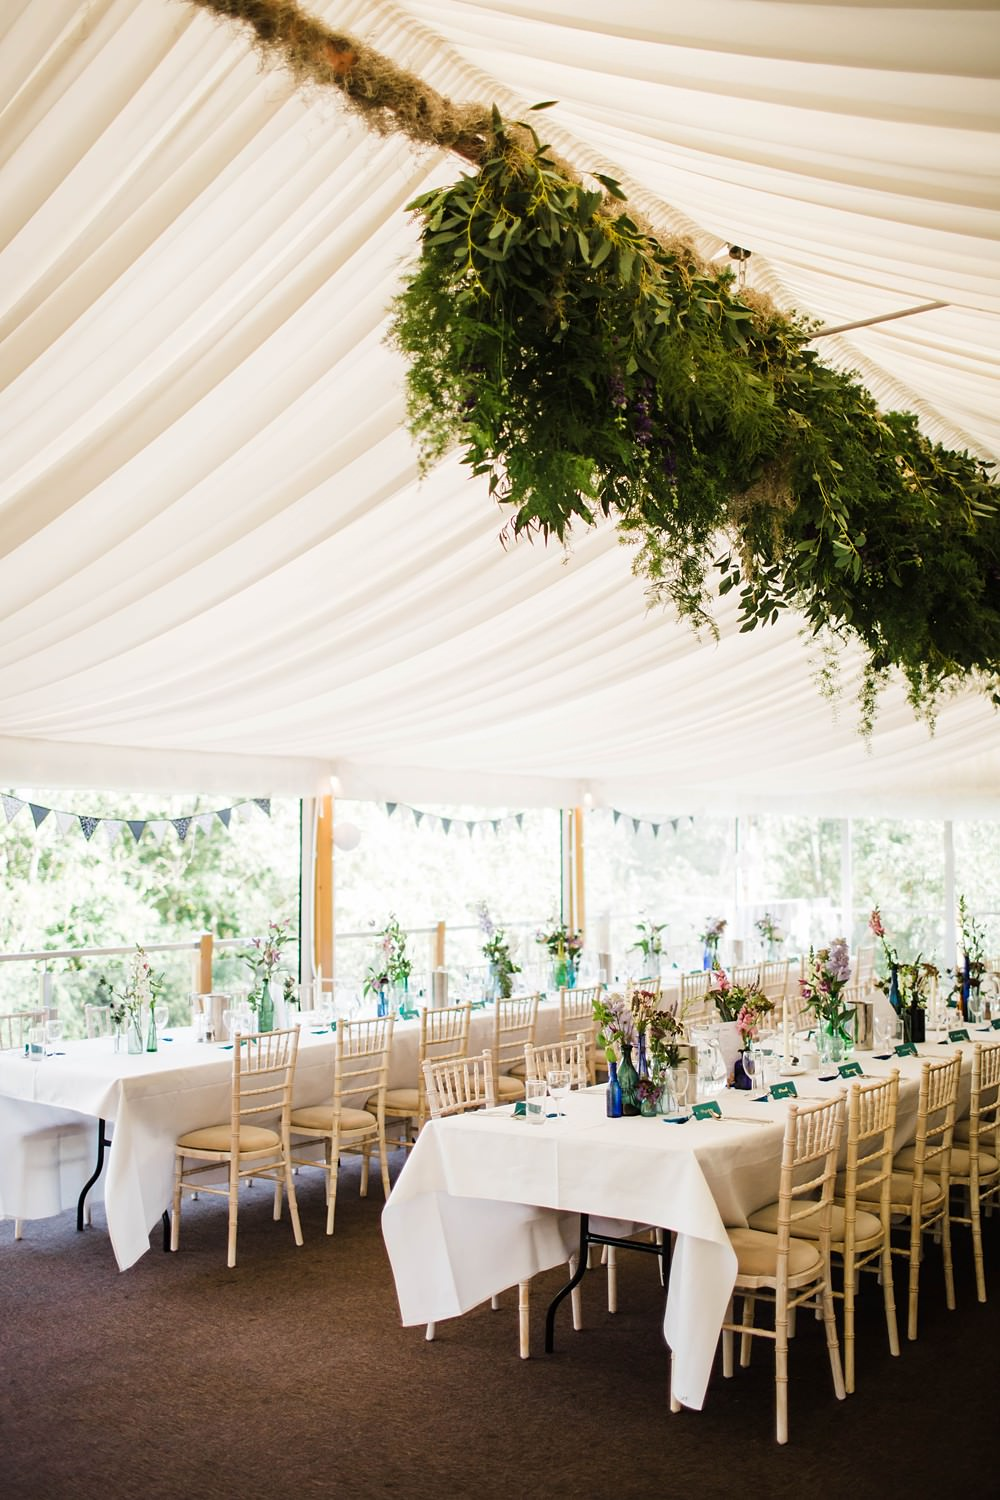 Marquee Suspended Hanging Foliage Greenery Installation Decor Cherwell Boathouse Wedding Claudia Rose Carter Photography